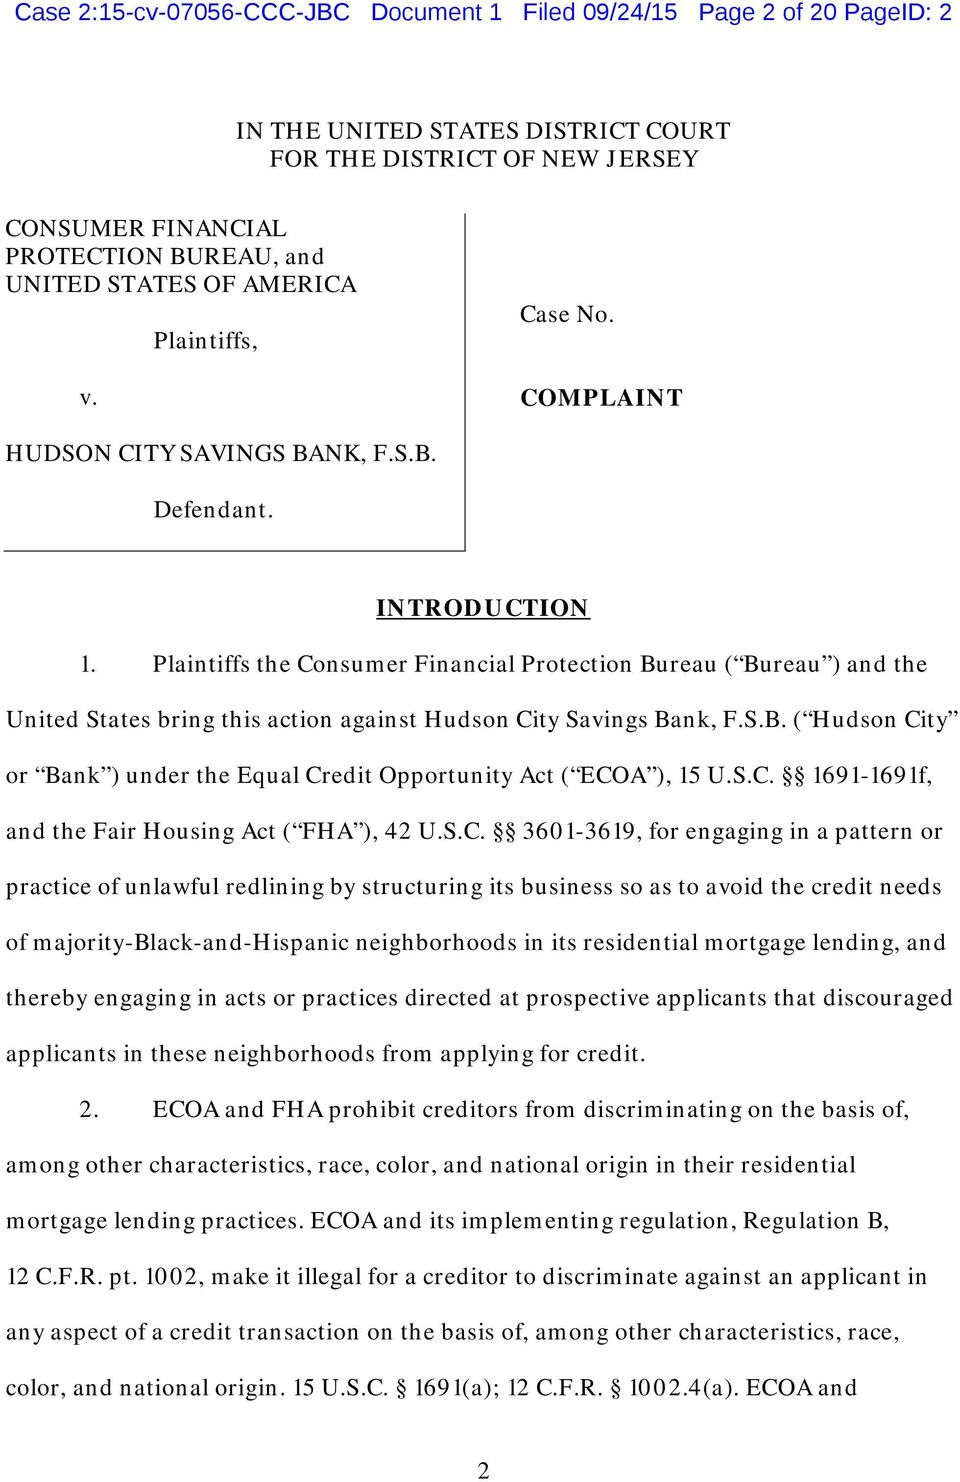 Plaintiffs the Consumer Financial Protection Bureau ( Bureau ) and the United States bring this action against Hudson City Savings Bank, F.S.B. ( Hudson City or Bank ) under the Equal Credit Opportunity Act ( ECOA ), 15 U.